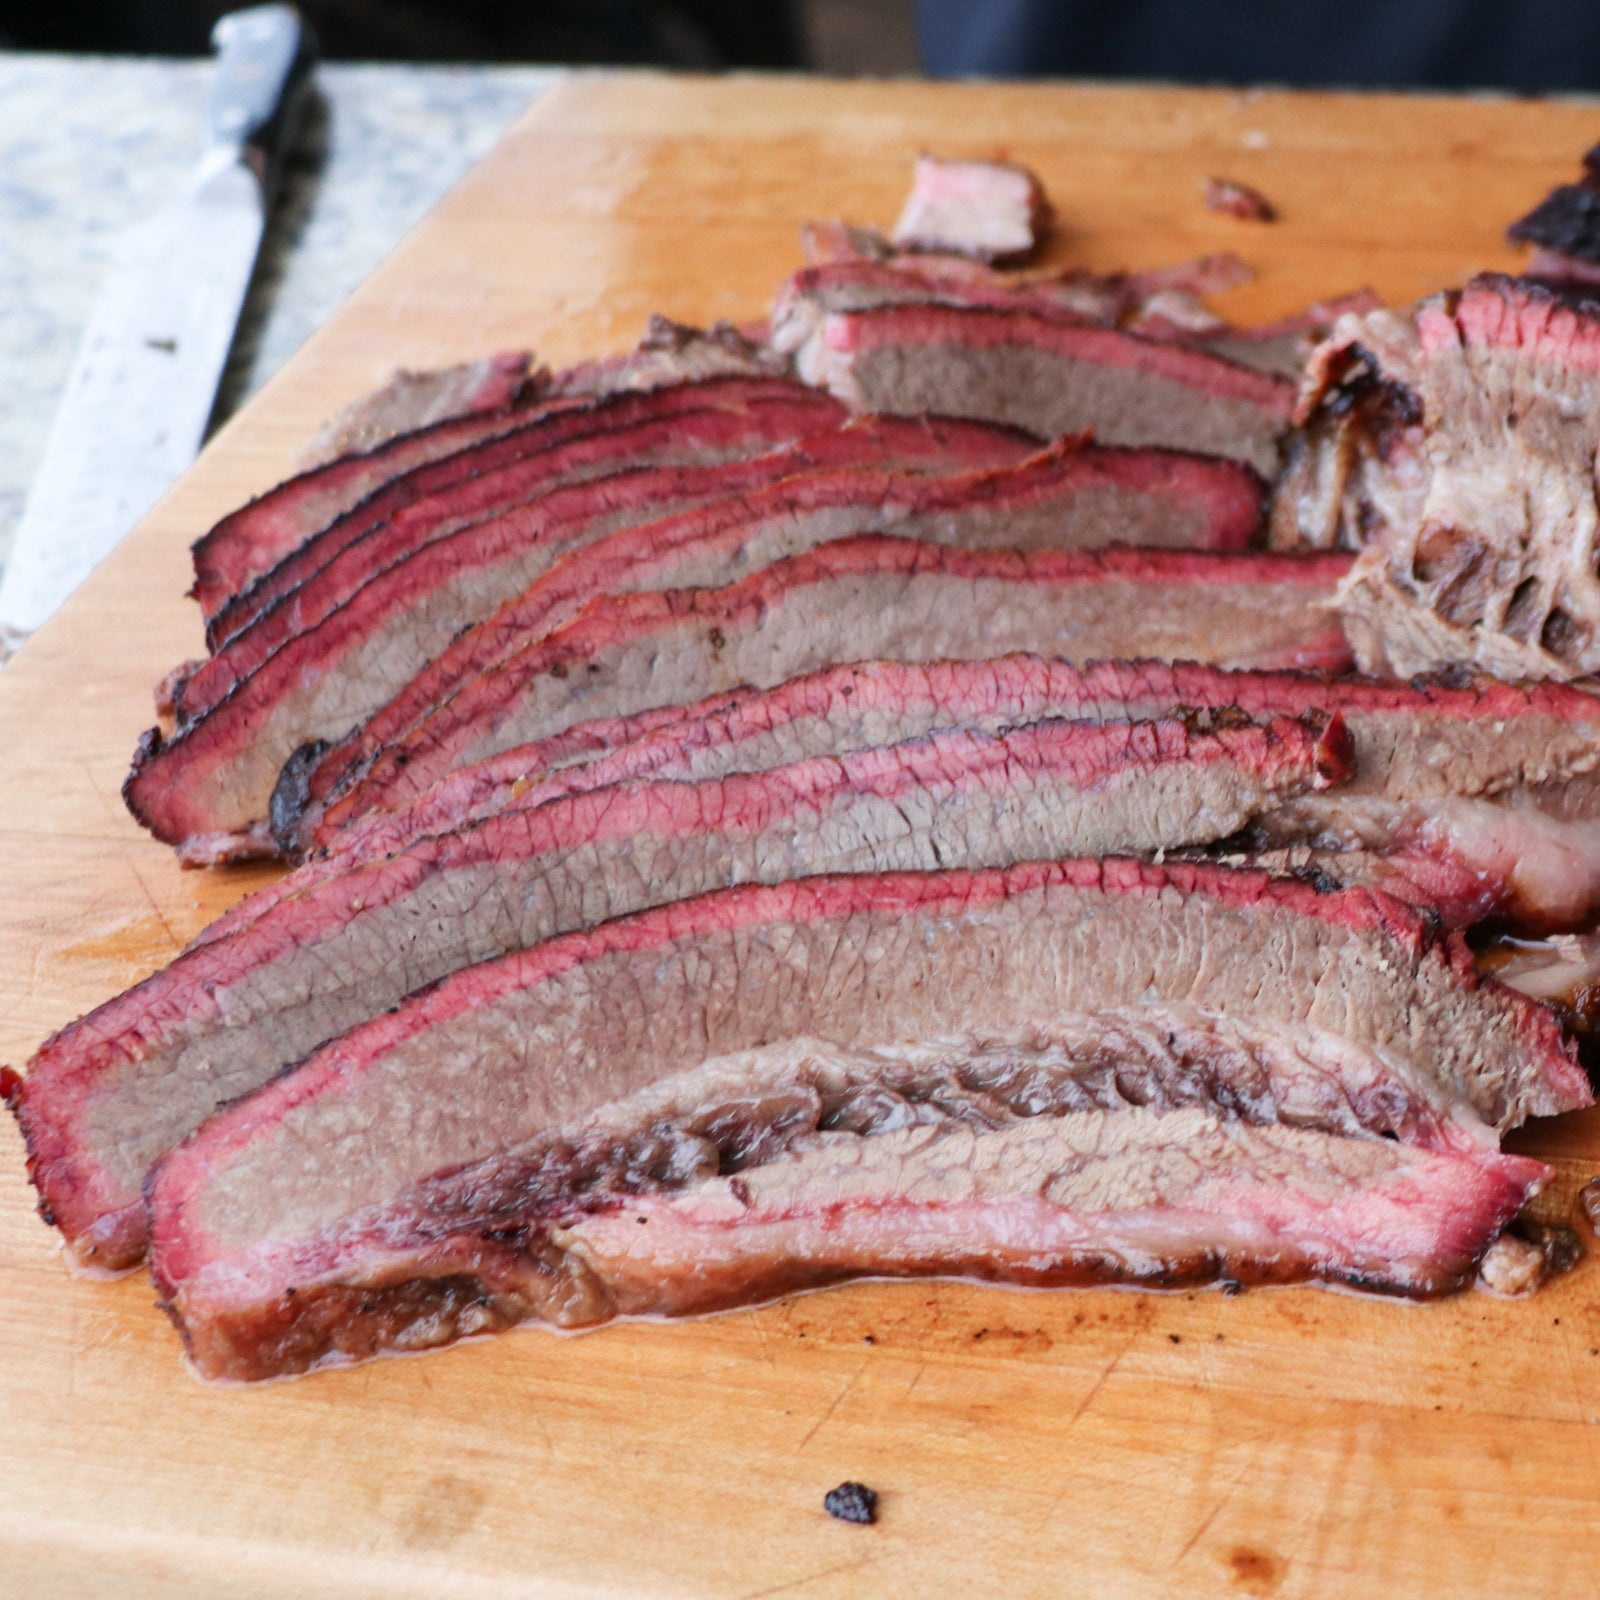 What You Need for Cookin' Brisket